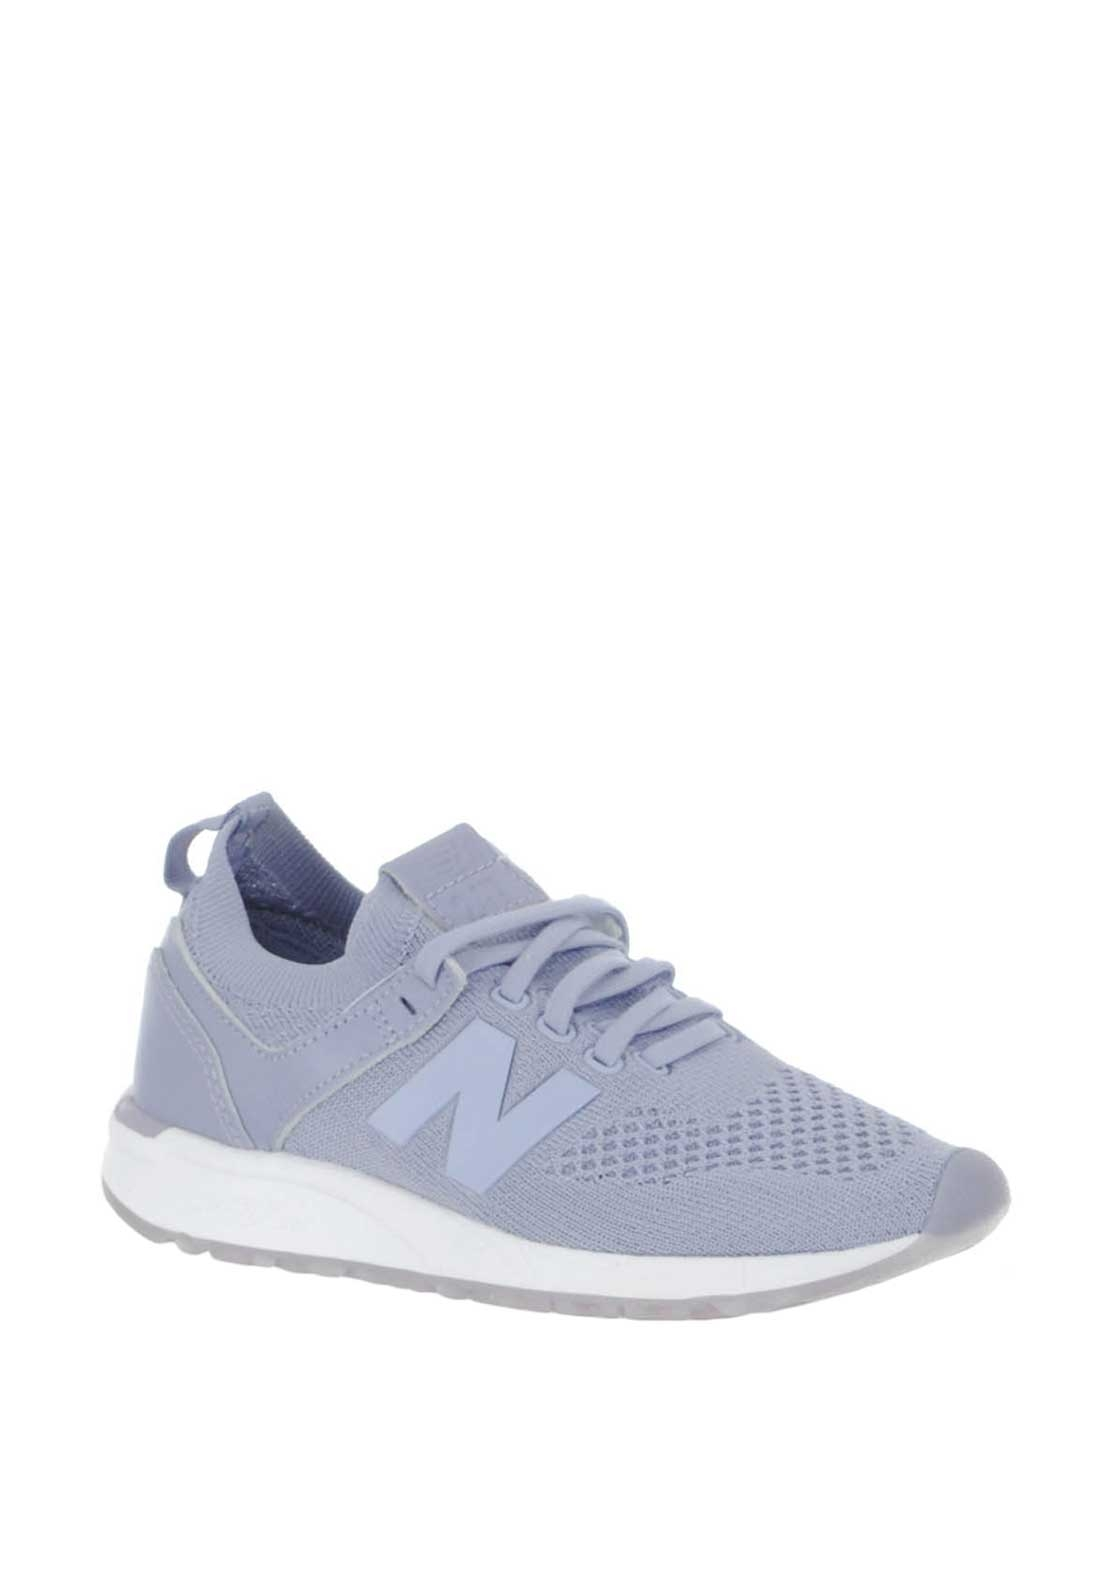 New Balance Womens 247 Decon Trainers, Lilac